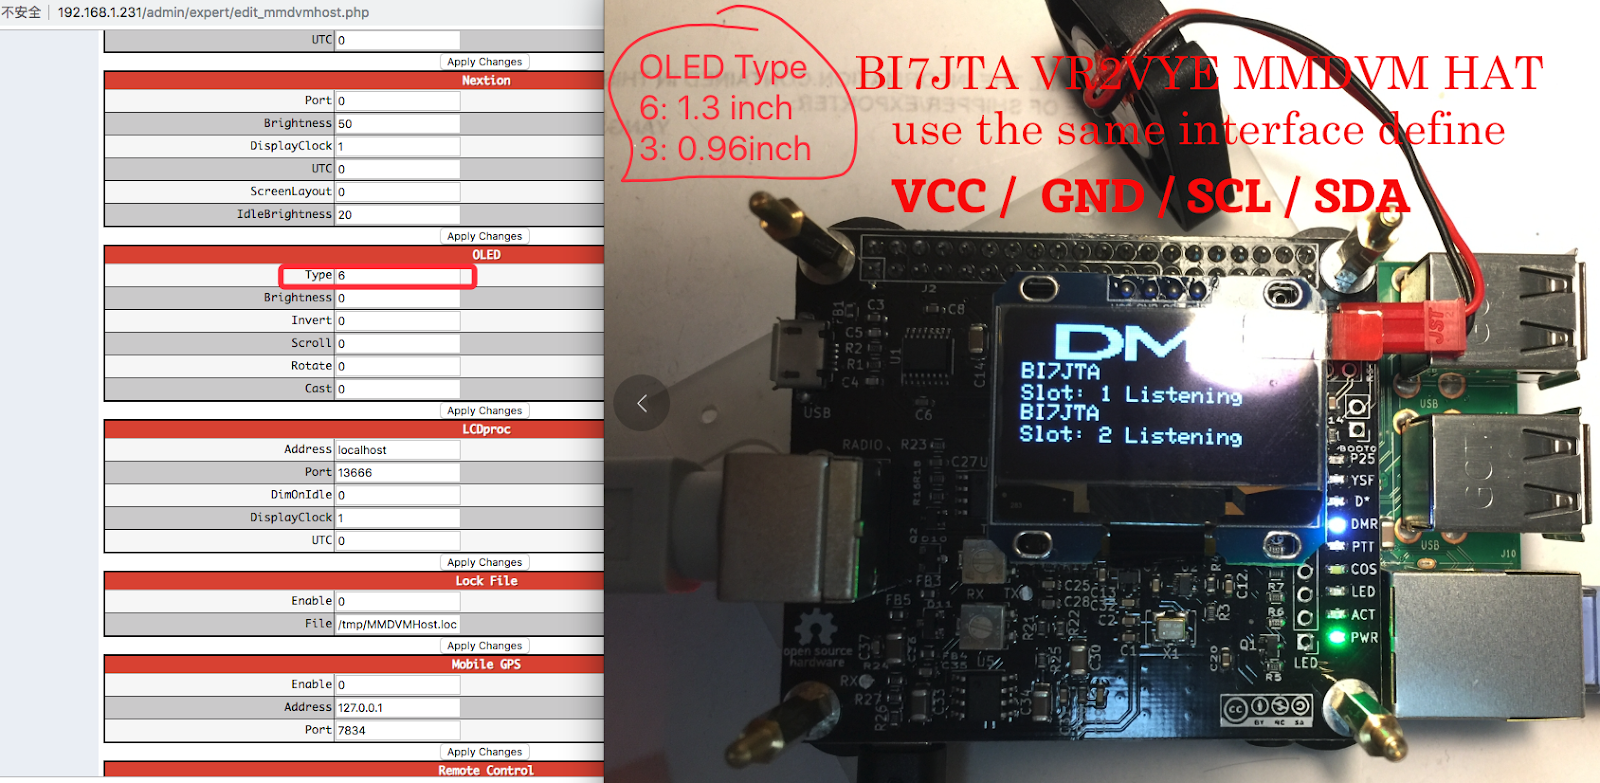 BI7JTA BLOG for MMDVM: Configure Guide for MMDVM Repeater